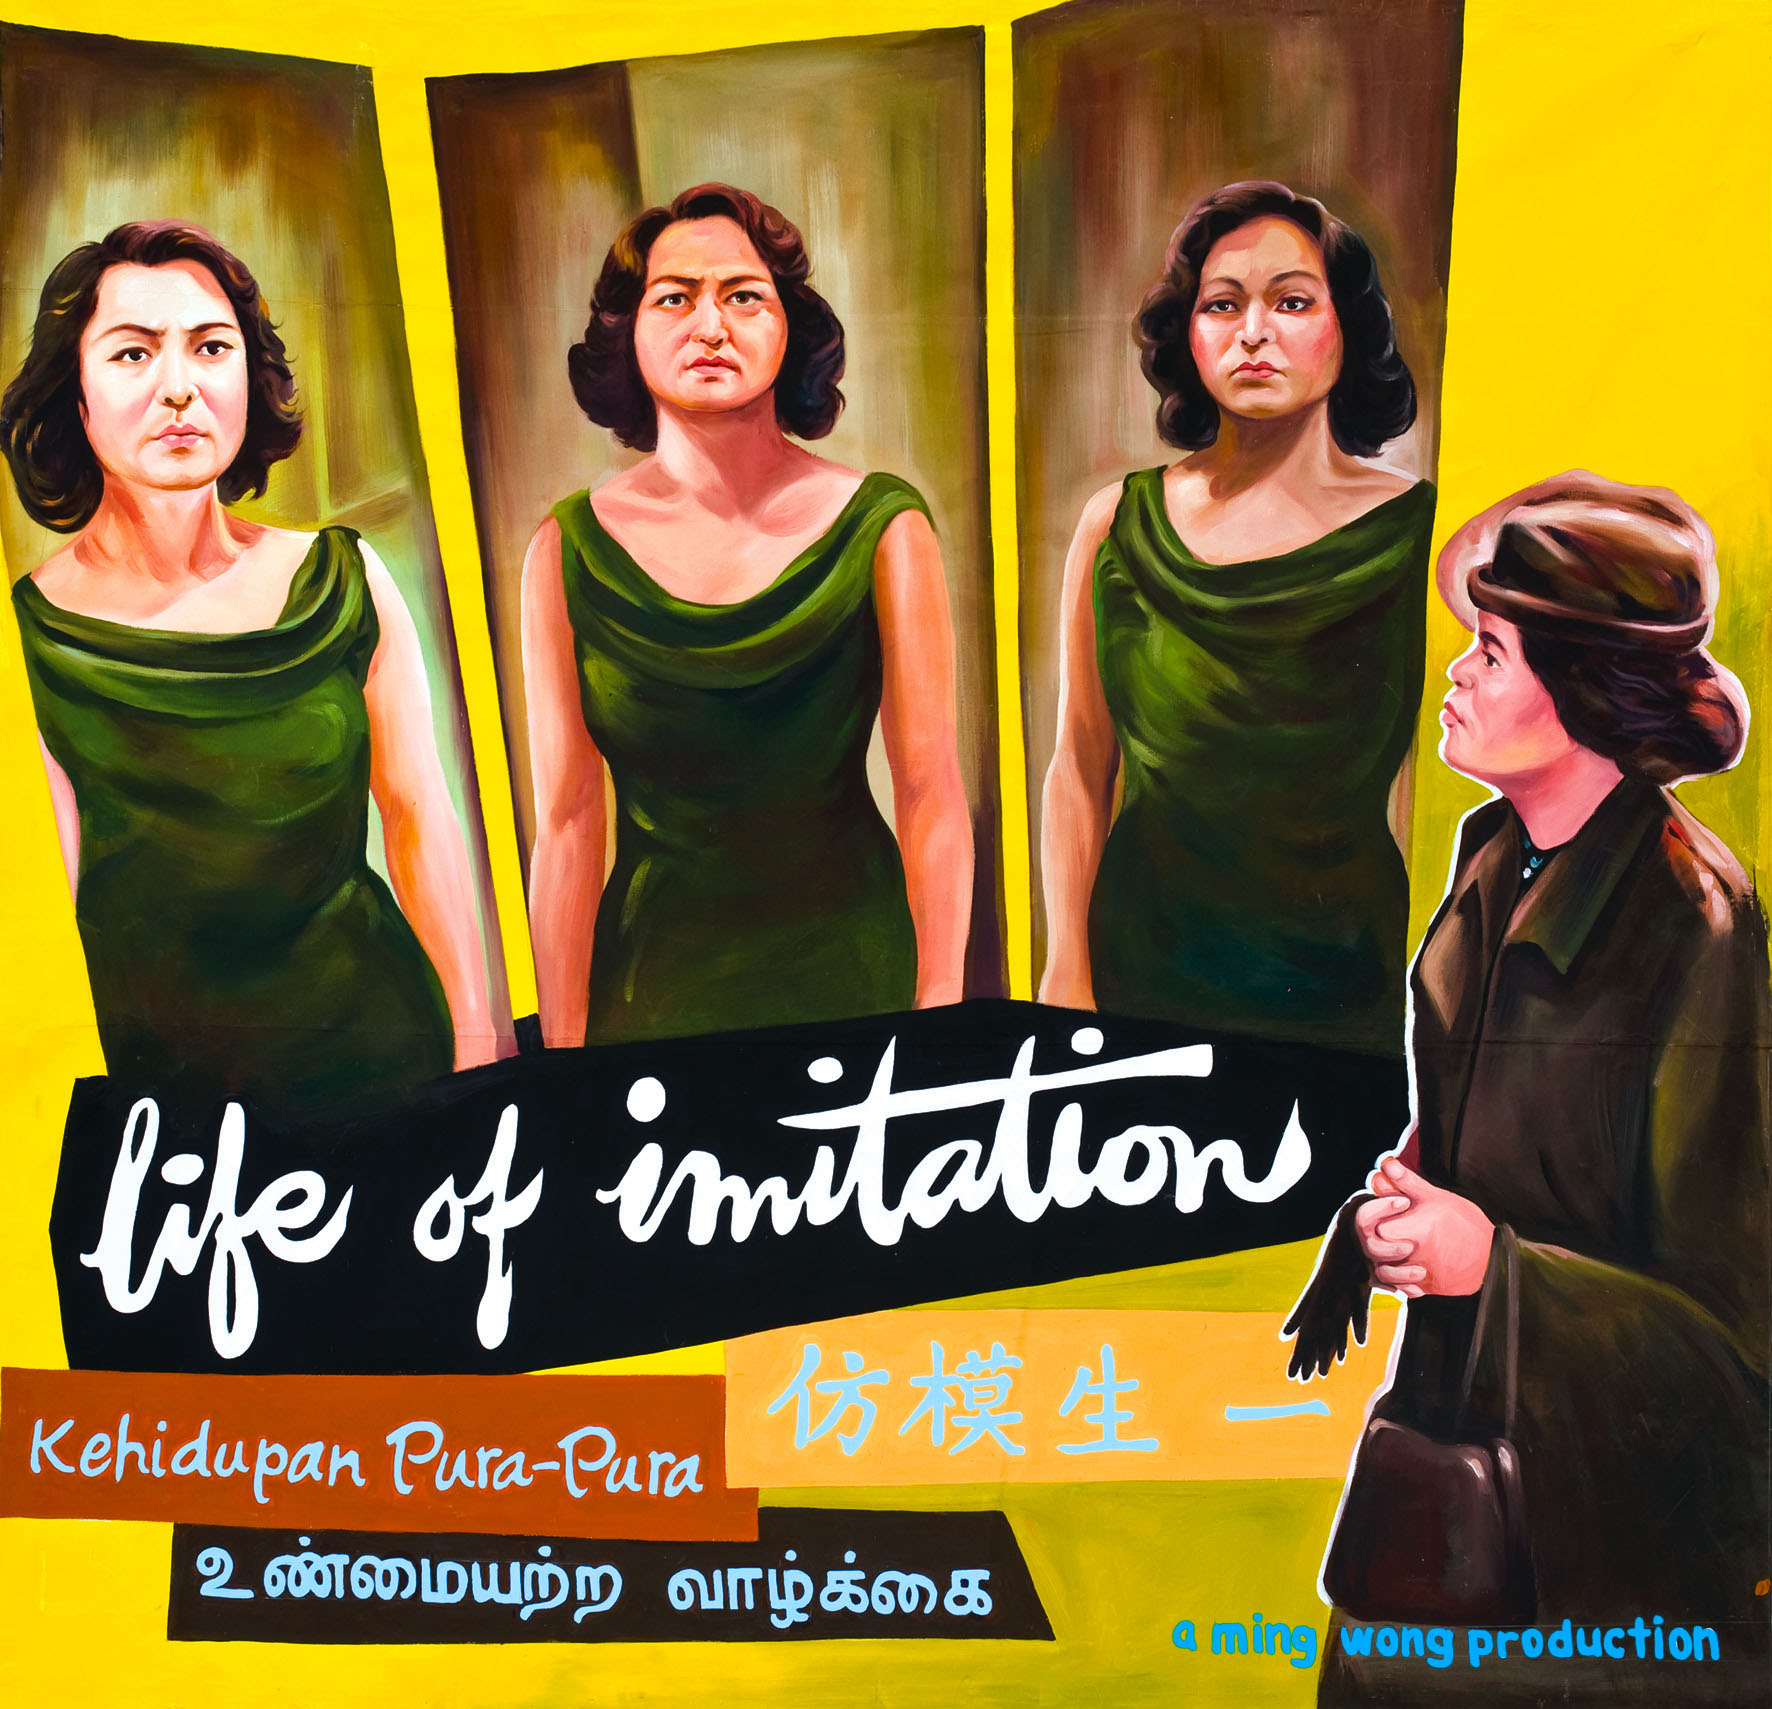 'Life of Imitation' (2009) by Neo Chon Teck (designed by Ming Wong